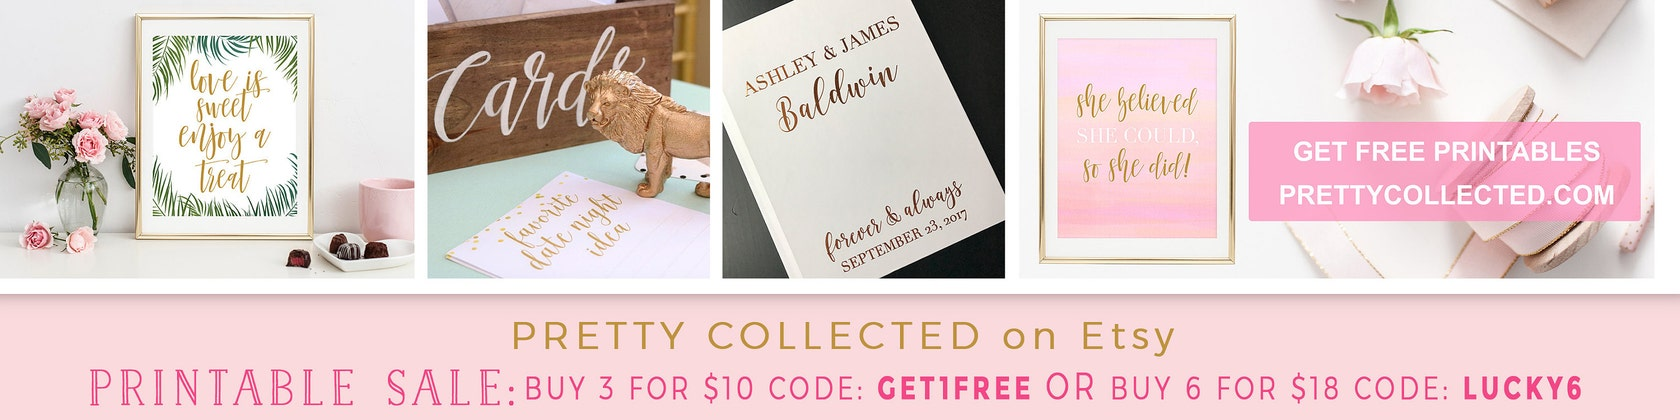 Bridal Shower & Baby Shower Games Wedding by PrettyCollected